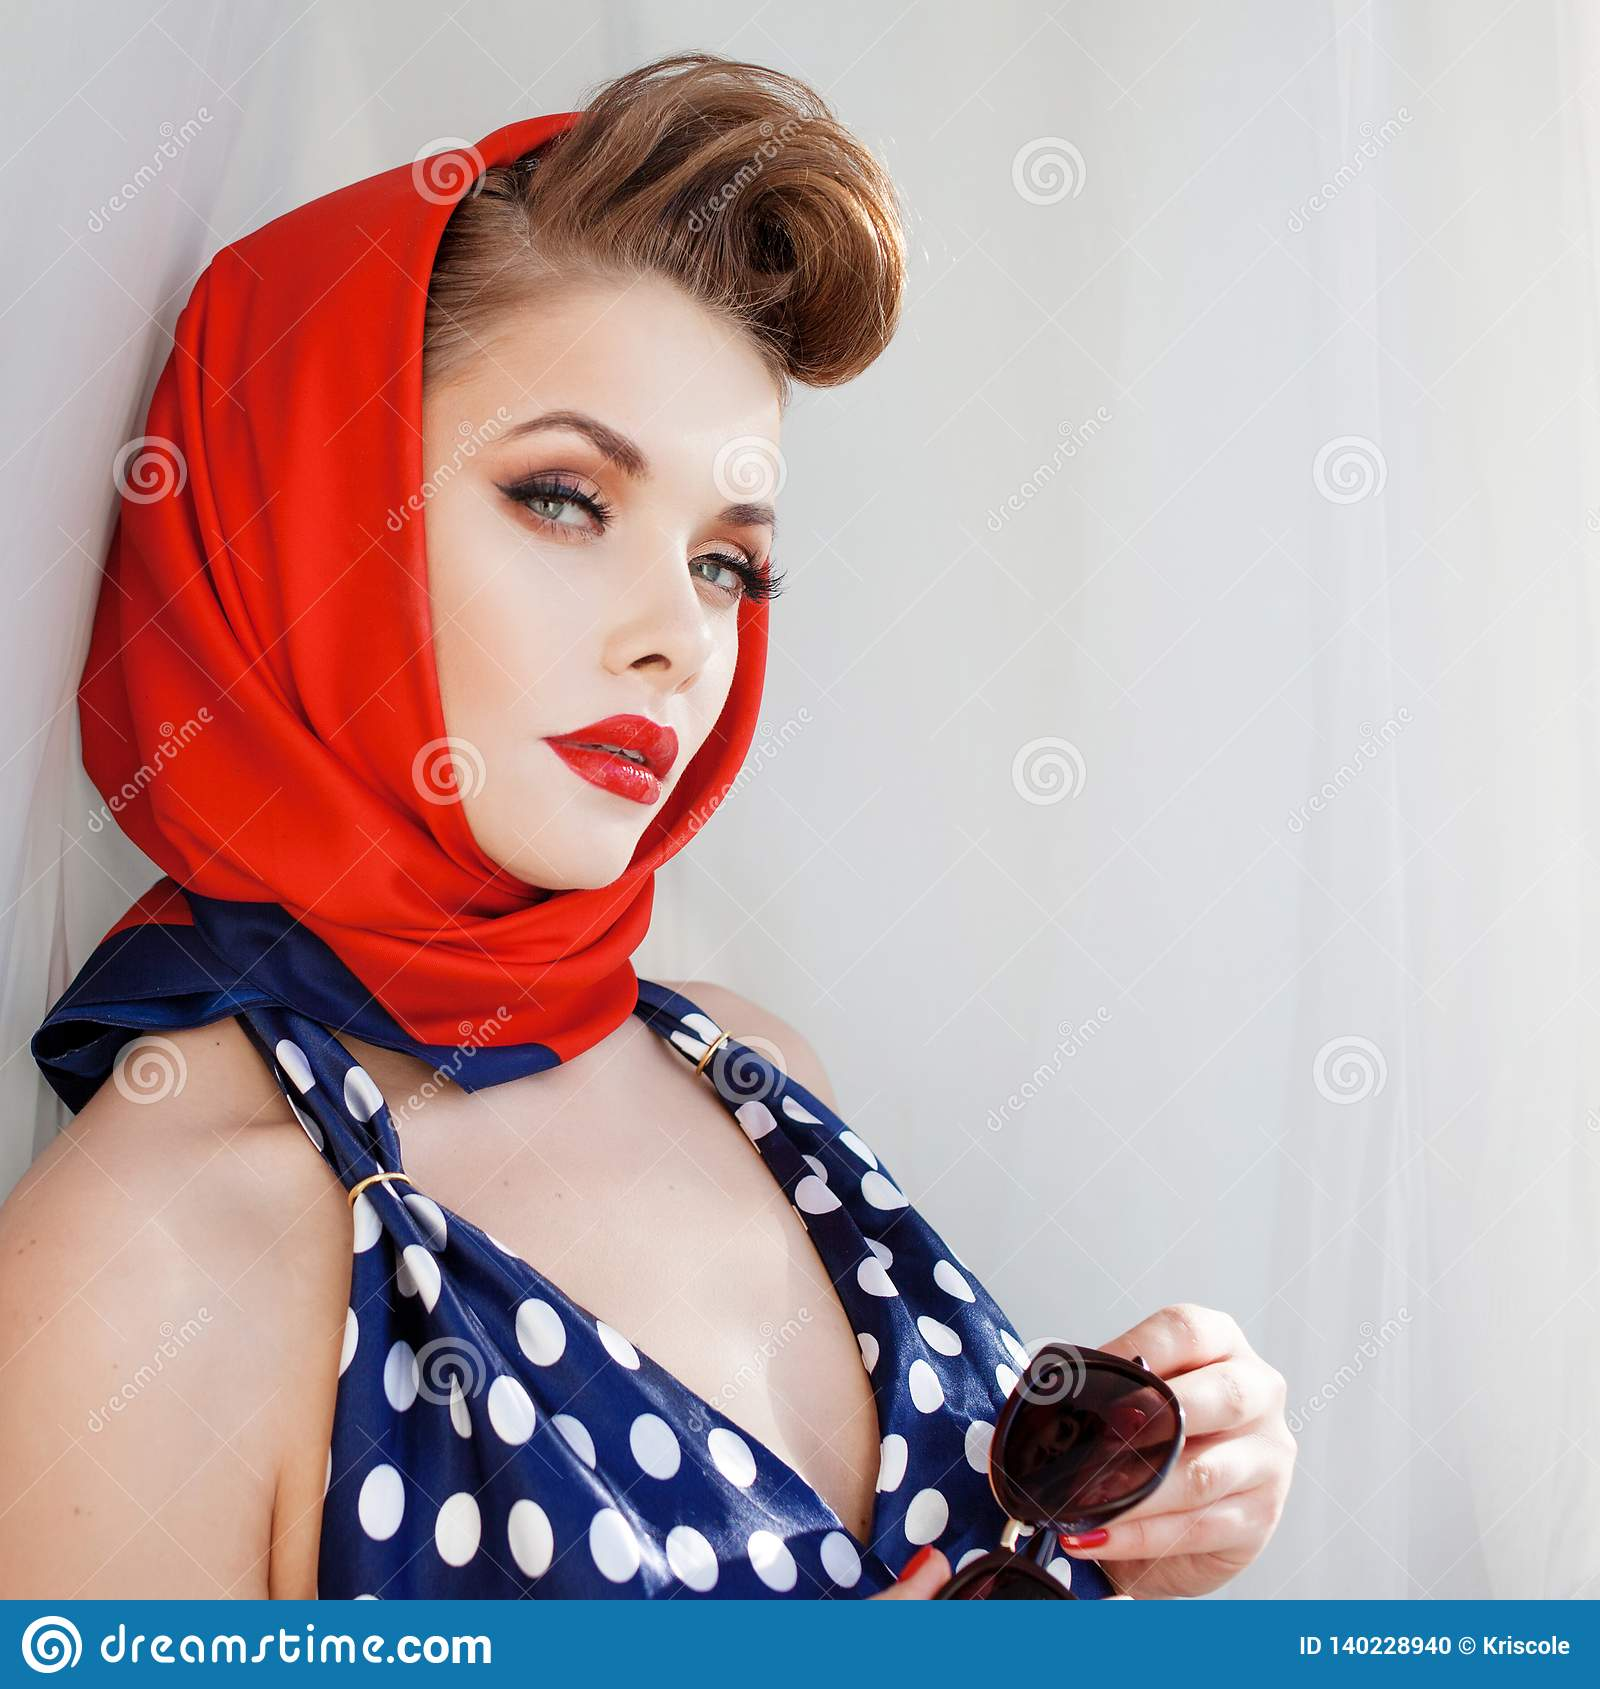 9a0d7f9d4a4aa Young Beautiful Woman With Red Lipstick And A Headscarf. Stock Photo ...